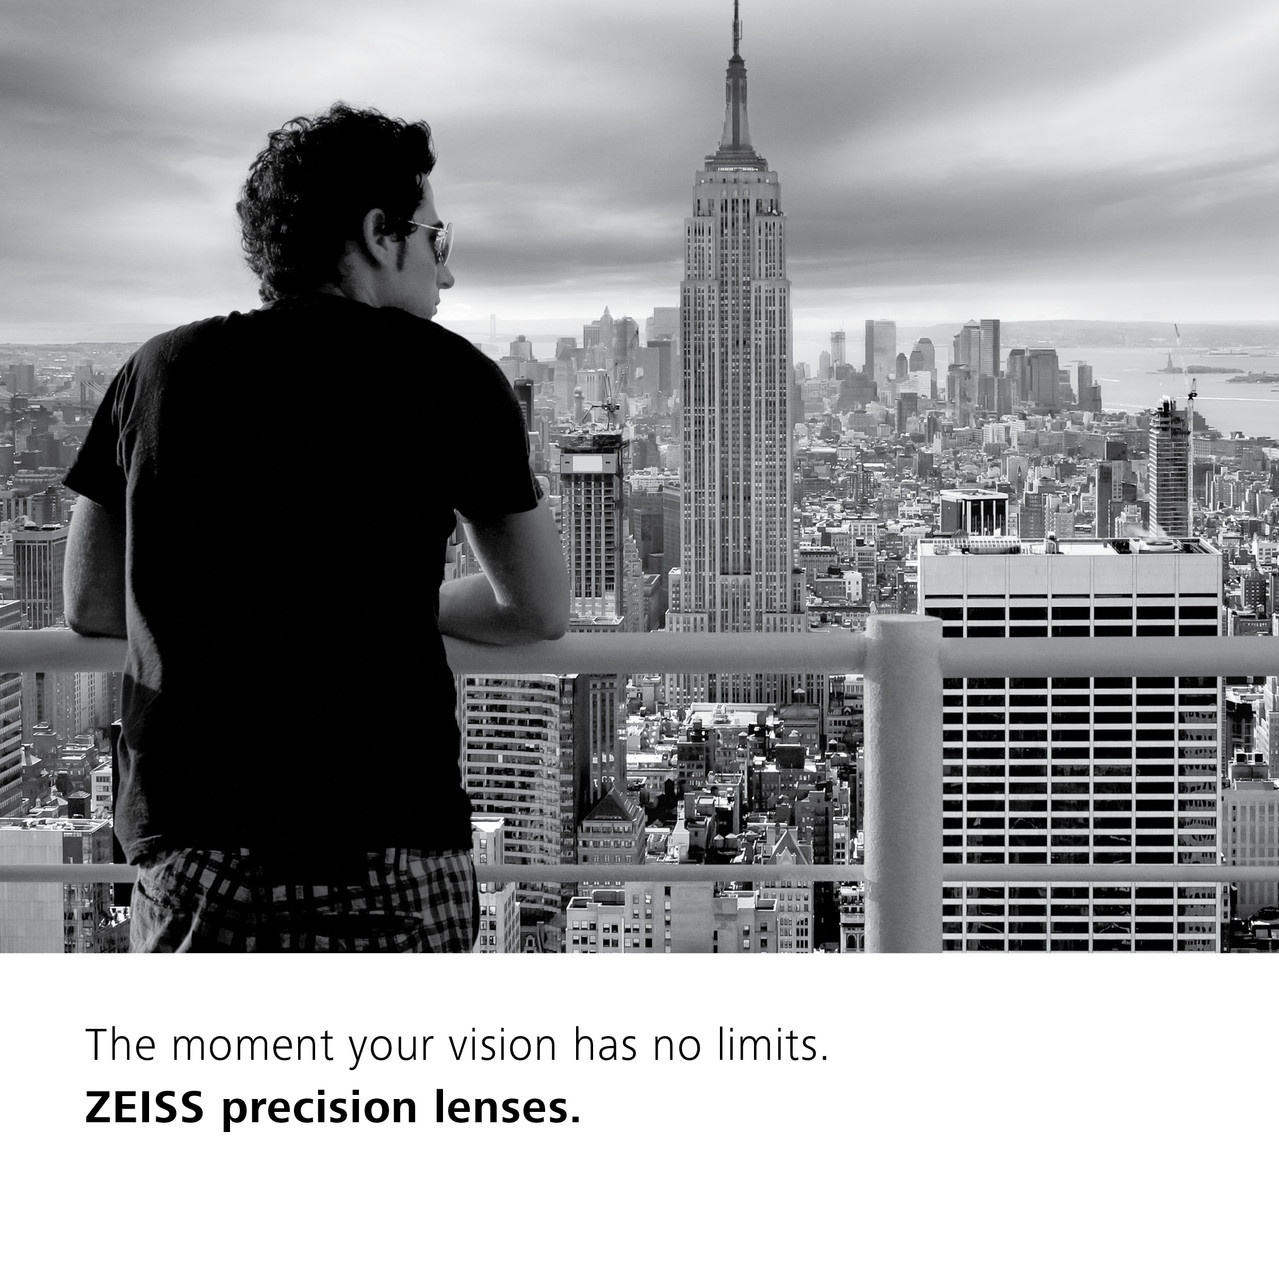 zeiss_brand_ny_visual_portrait